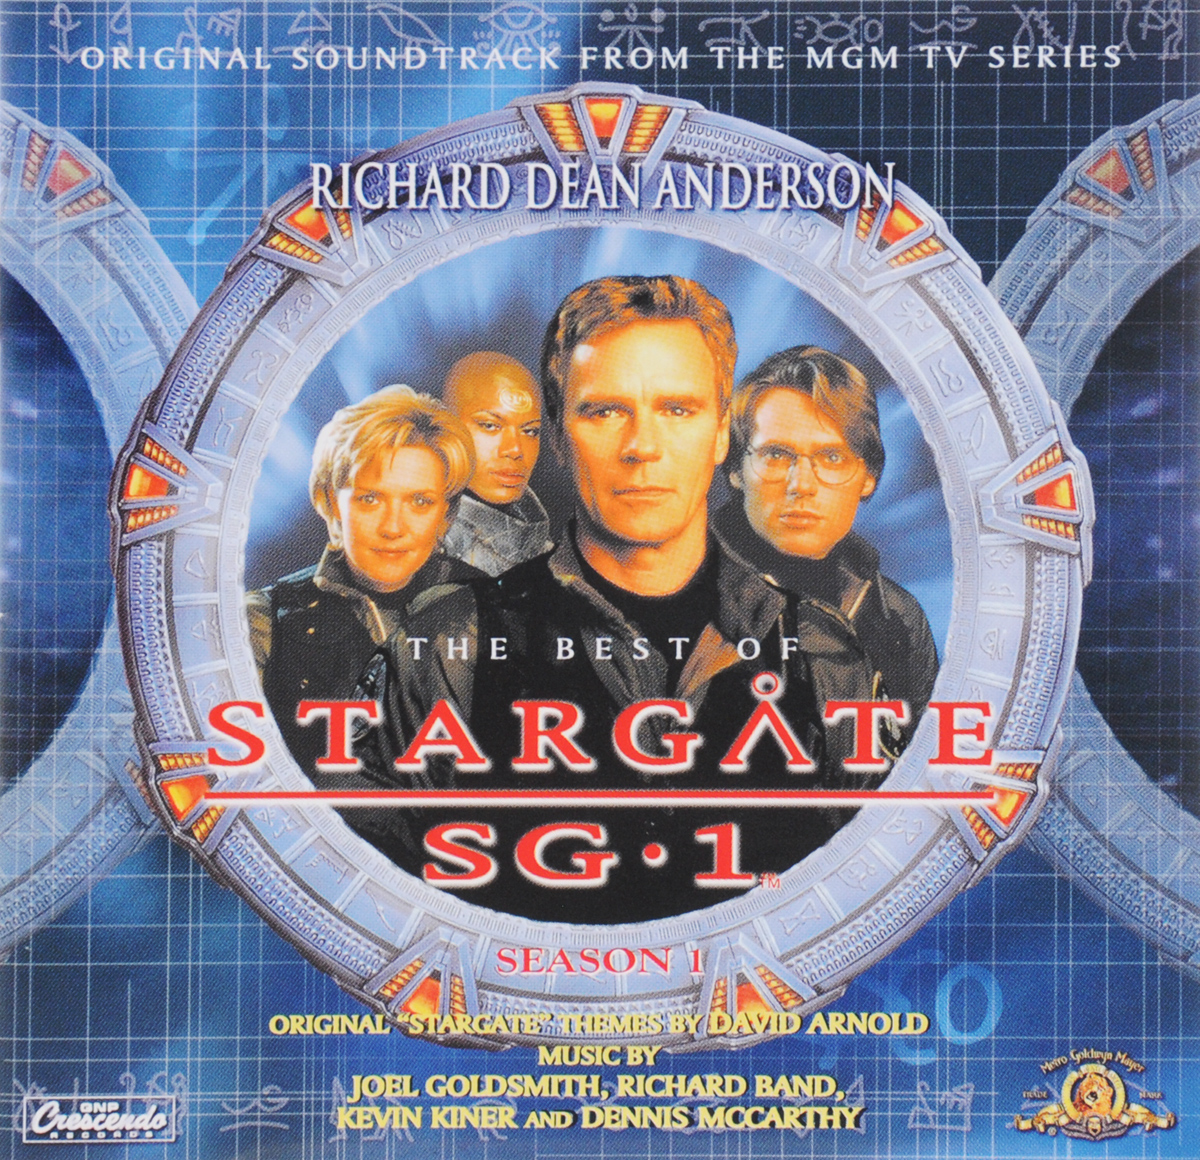 The Best Of Stargate SG-1. Season 1. Original Soundtrack From The MGM TV Series [sa] new original special sales mayser safety relay sg efs 134 zk2 1 spot